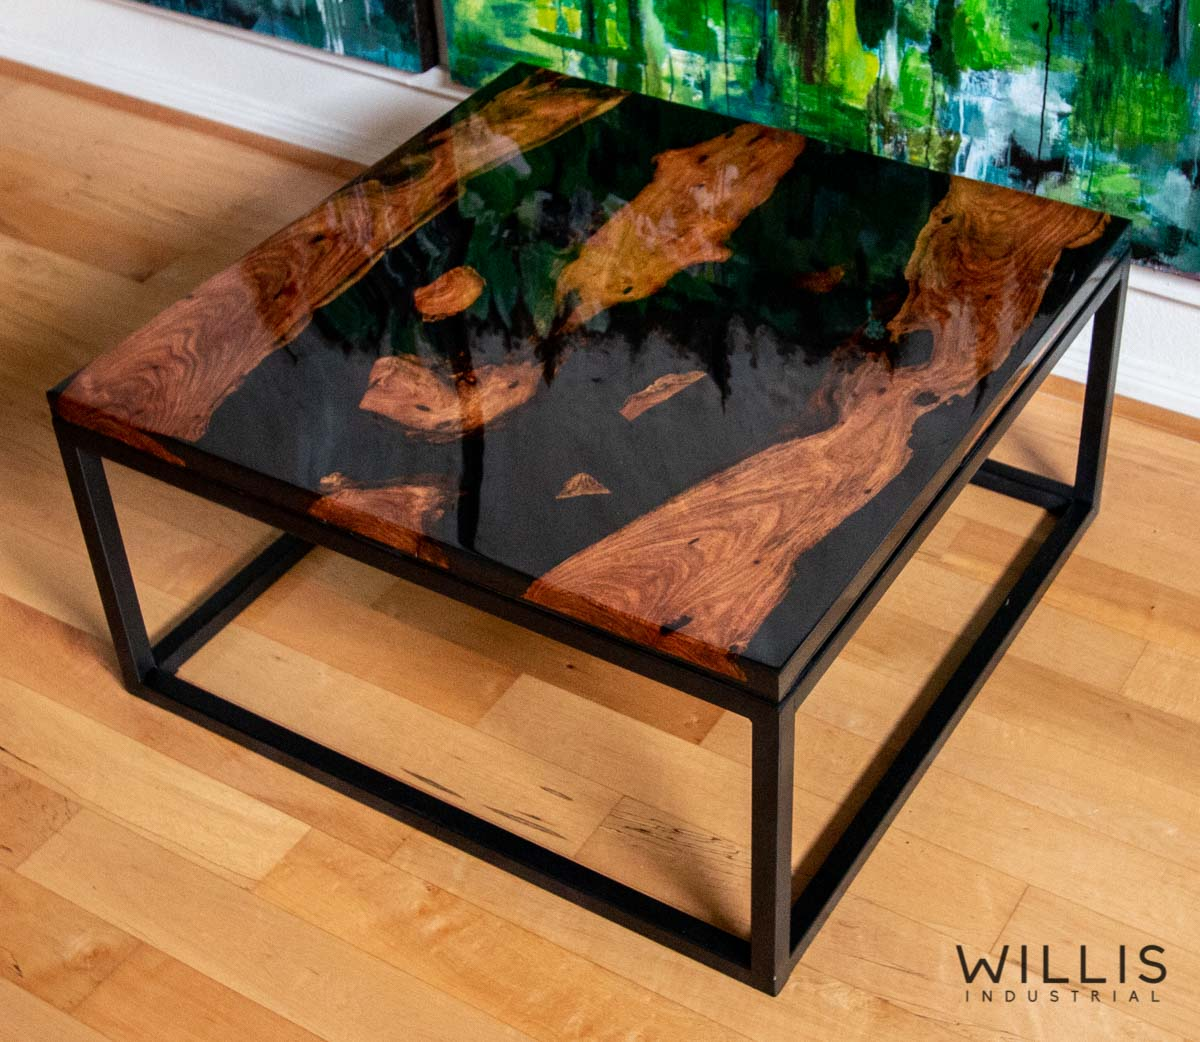 Willis Industrial Furniture | Rustic, Modern Furniture | Mesquite Inverted Live Edge Boards with Black Epoxy & Black Painted Steel Cubed Frame